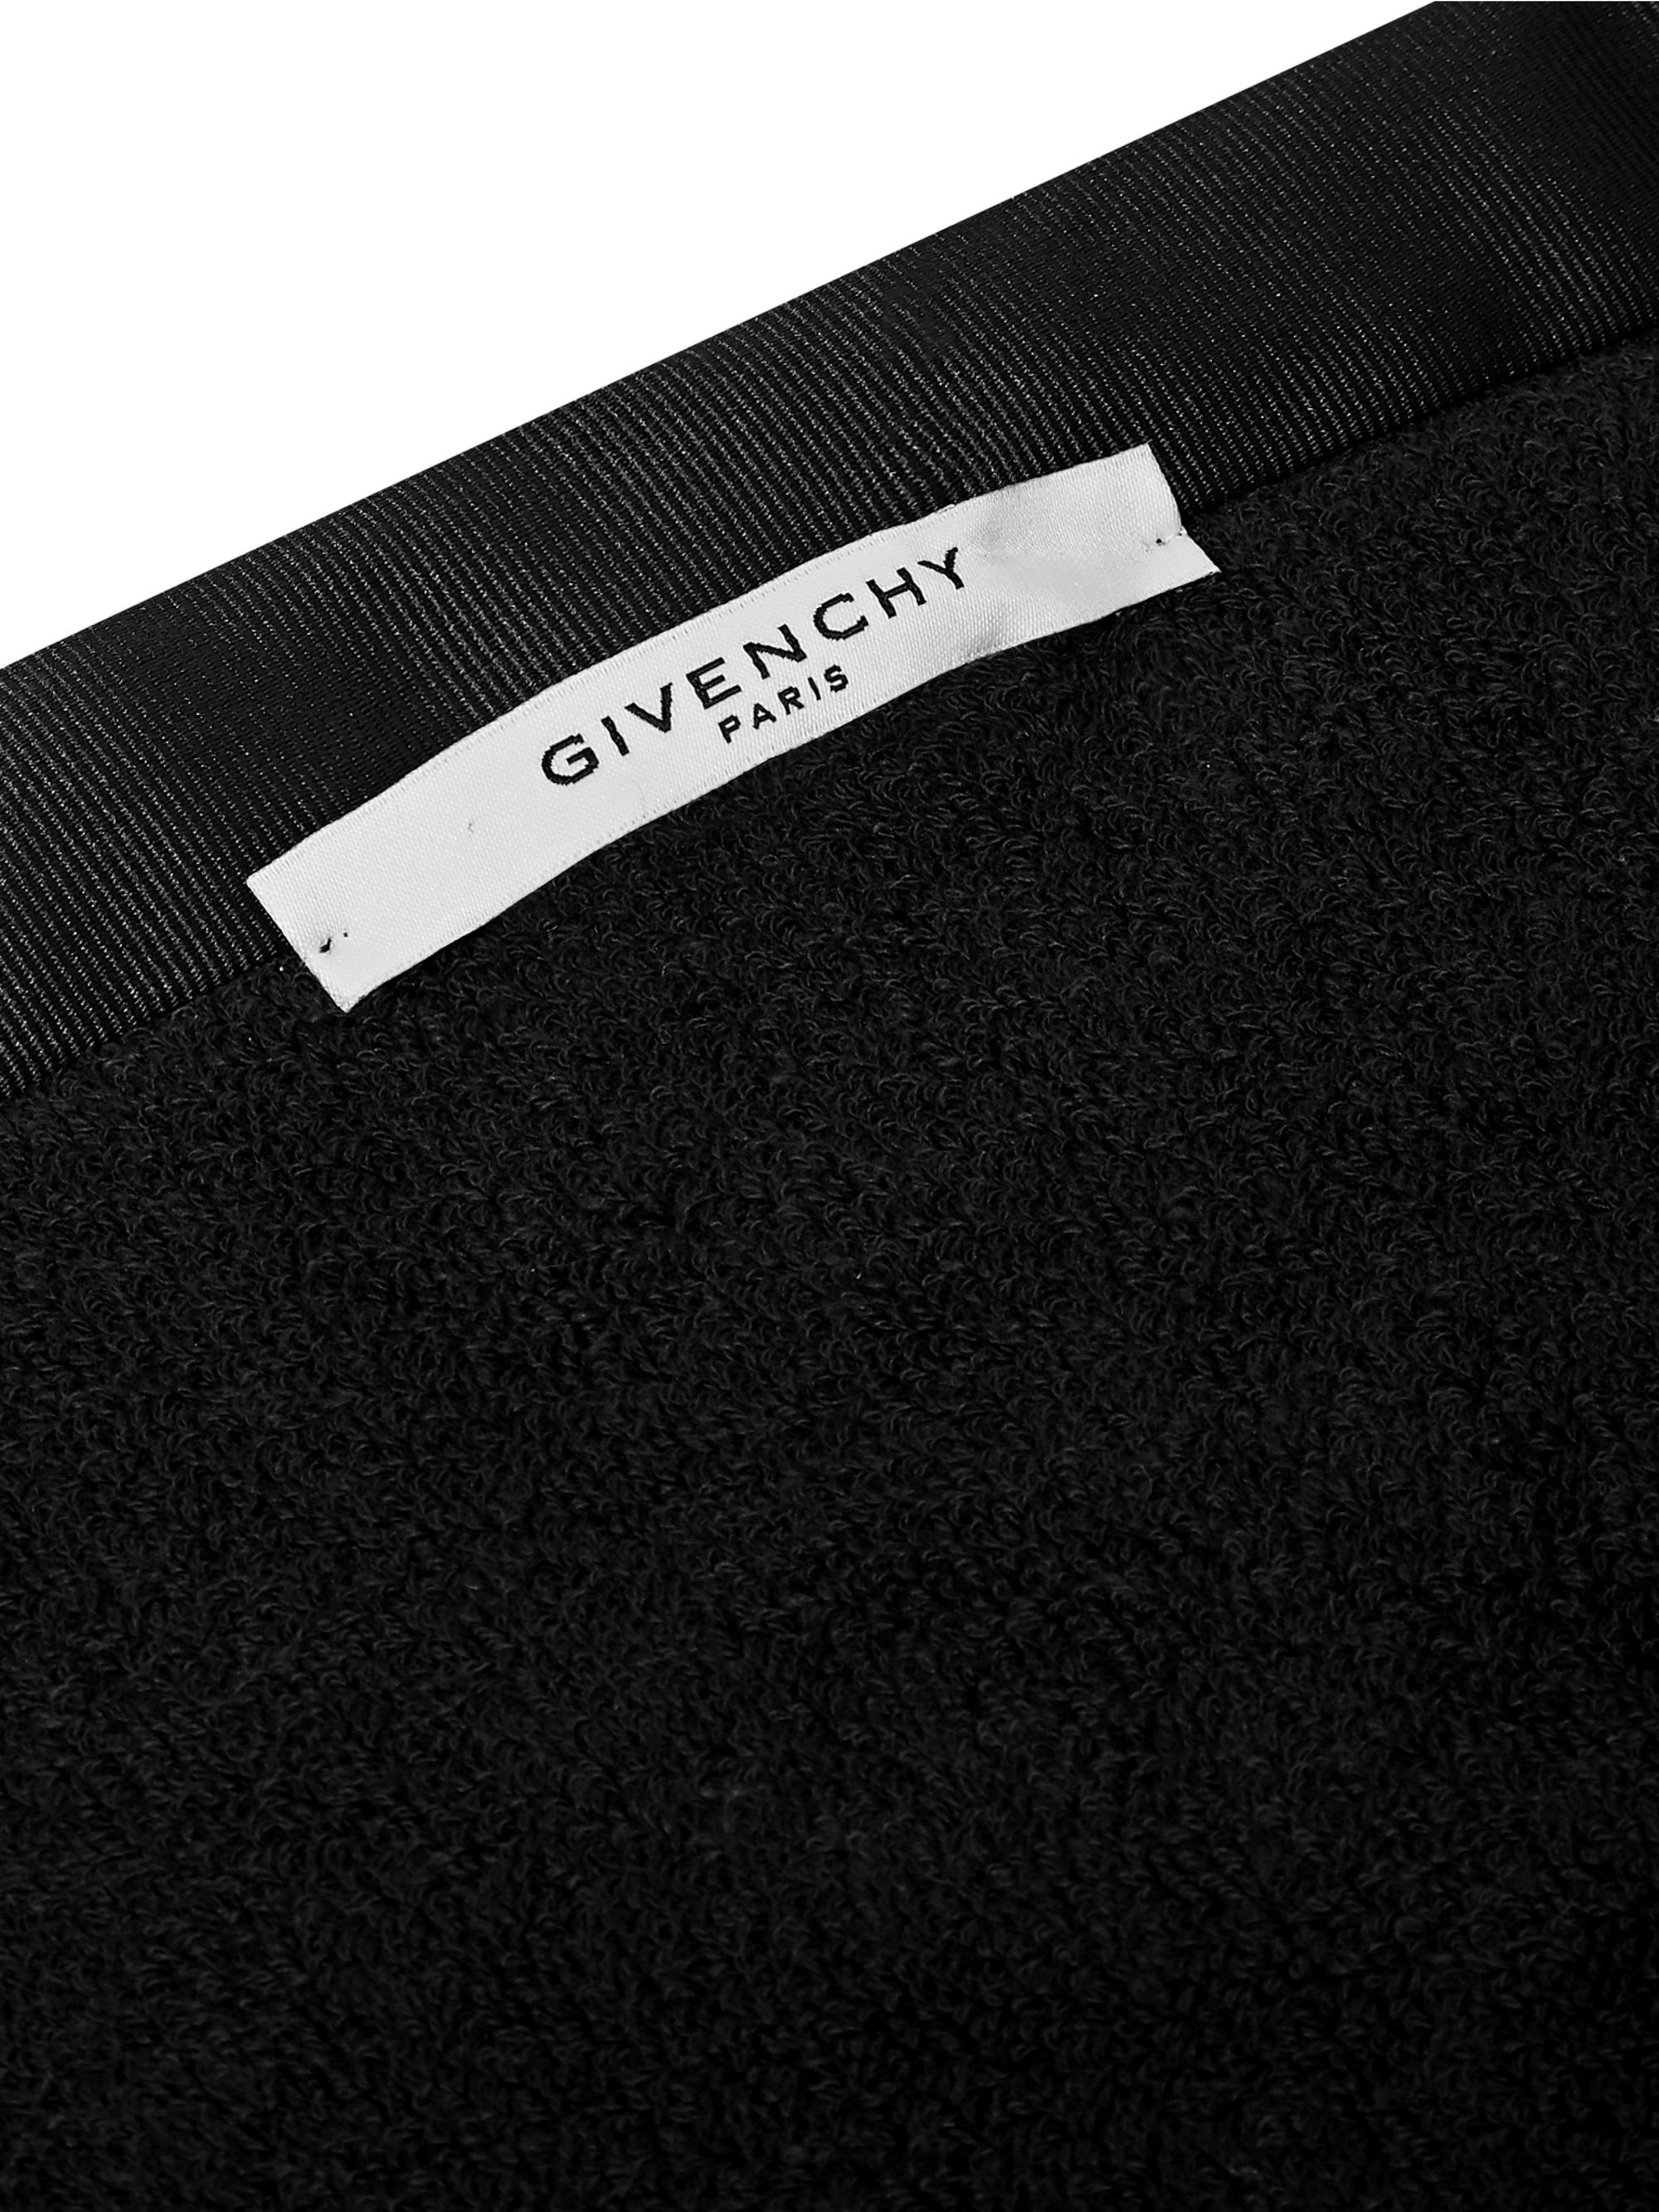 Givenchy Logo-Embroidered Cotton-Terry Towel